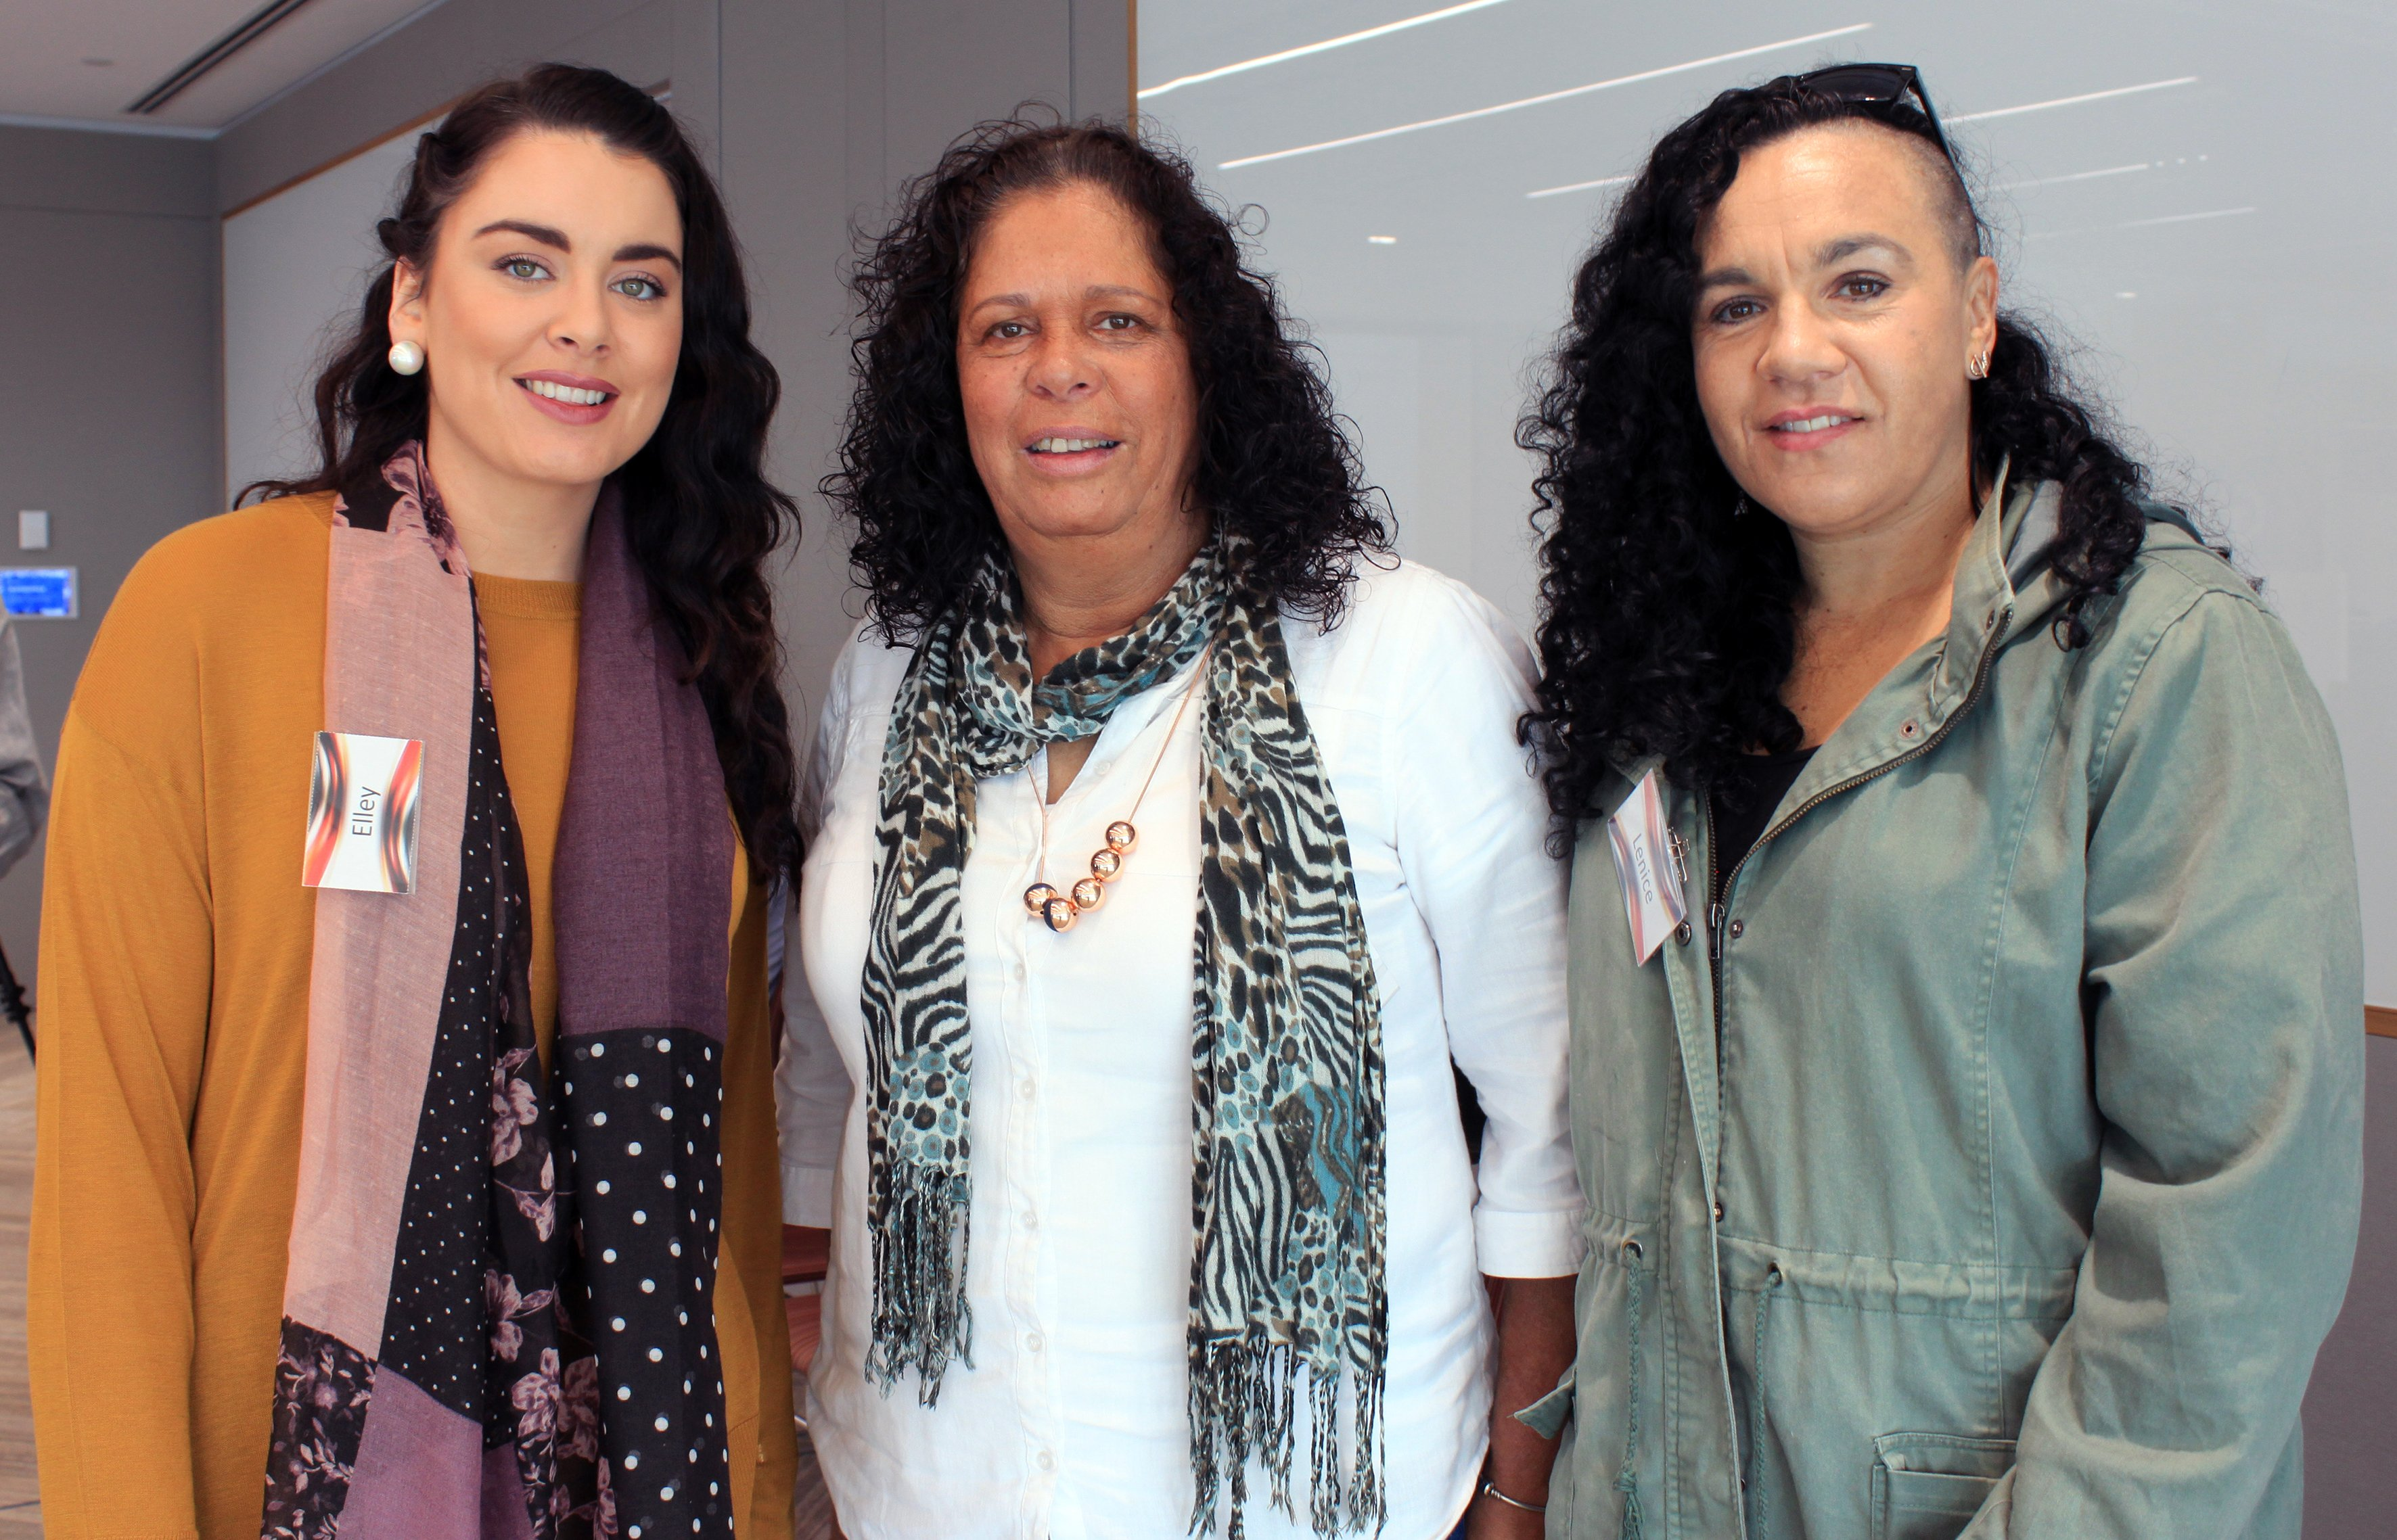 Elley Gray, Lila Steward & Lenice Husband (Myimbarr - Illawarra Aboriginal Corporation).